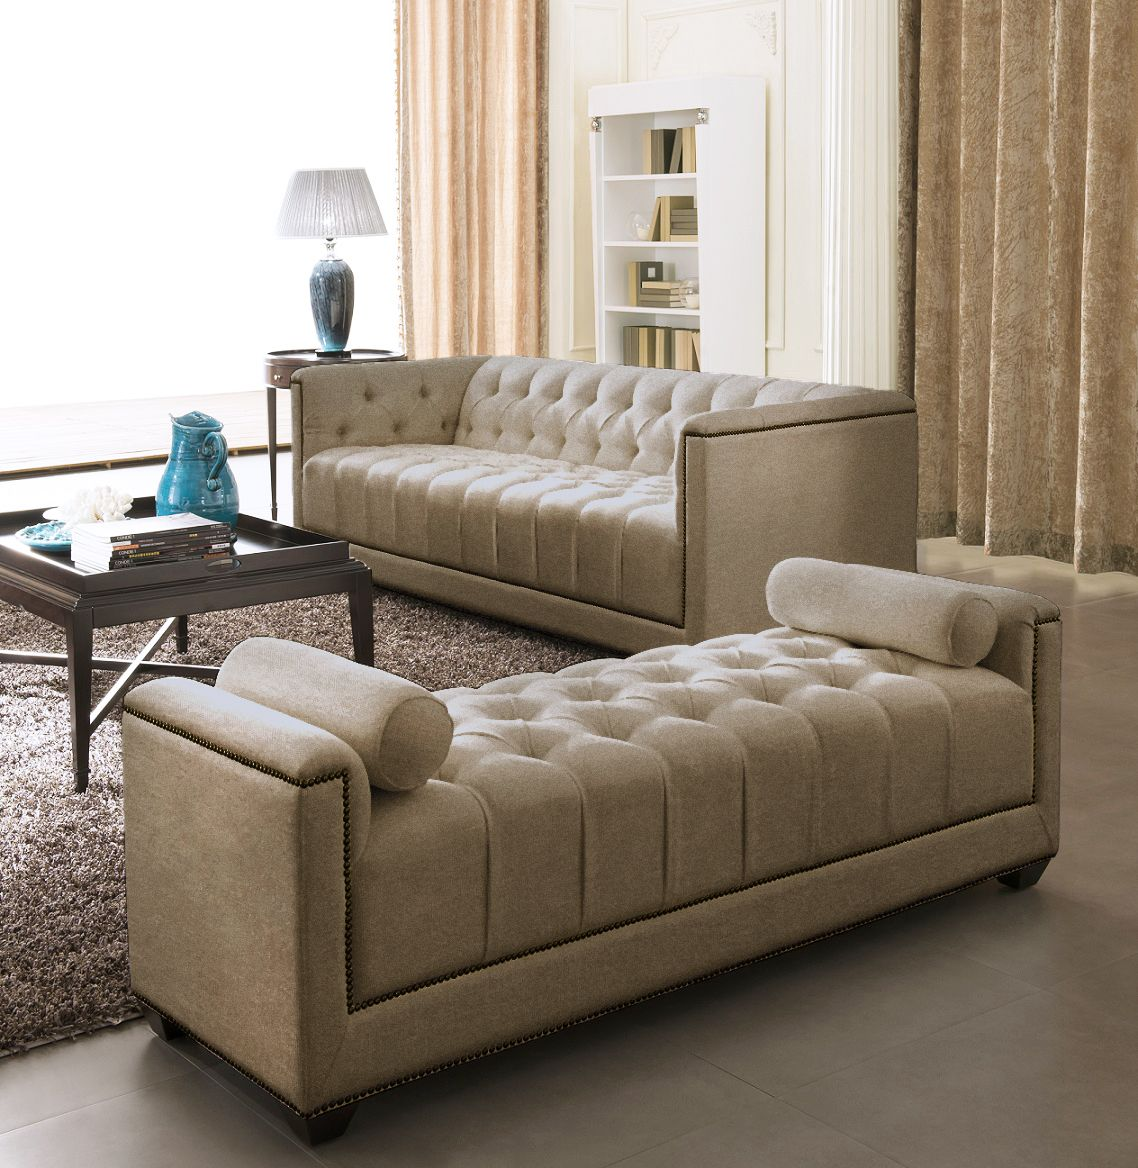 modern sofa set designs for living room  Vijay  Sofa set